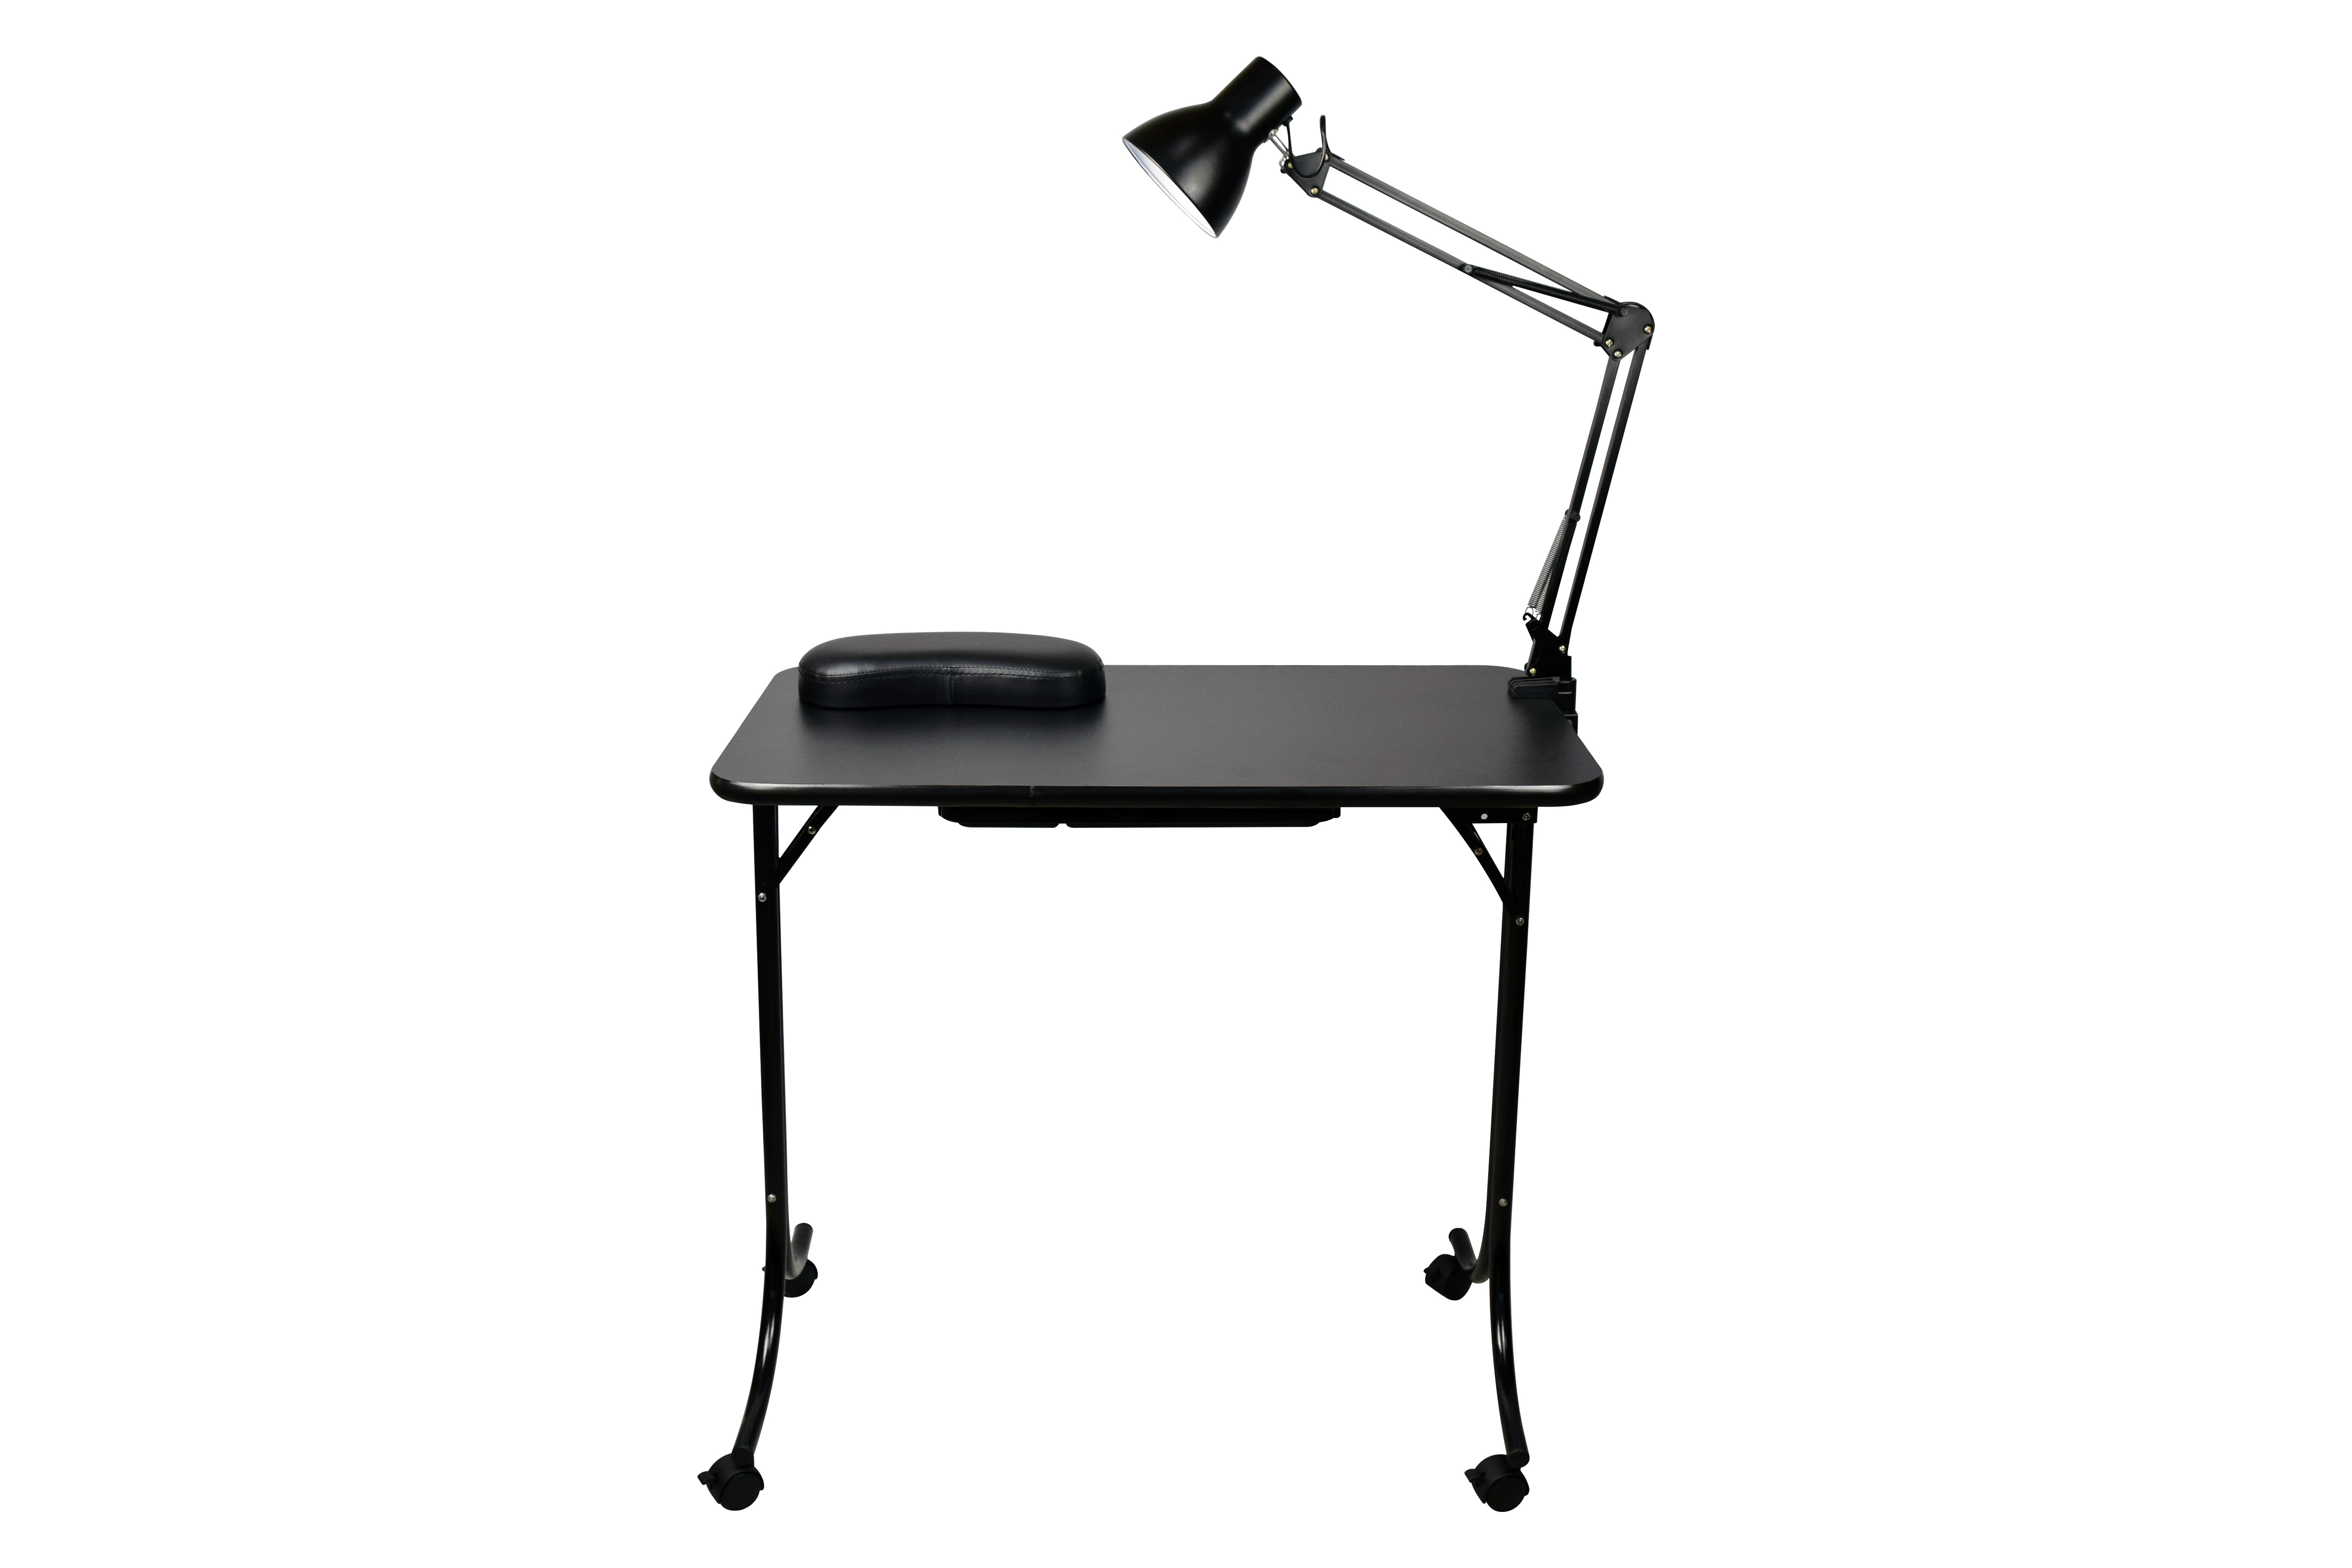 This Nt 003 Portable Manicure Table Is Lightweight Under 20lbs Folds Flat For Storage Or Carrying Comes With An Elegant Lamp Cl Ul Roved